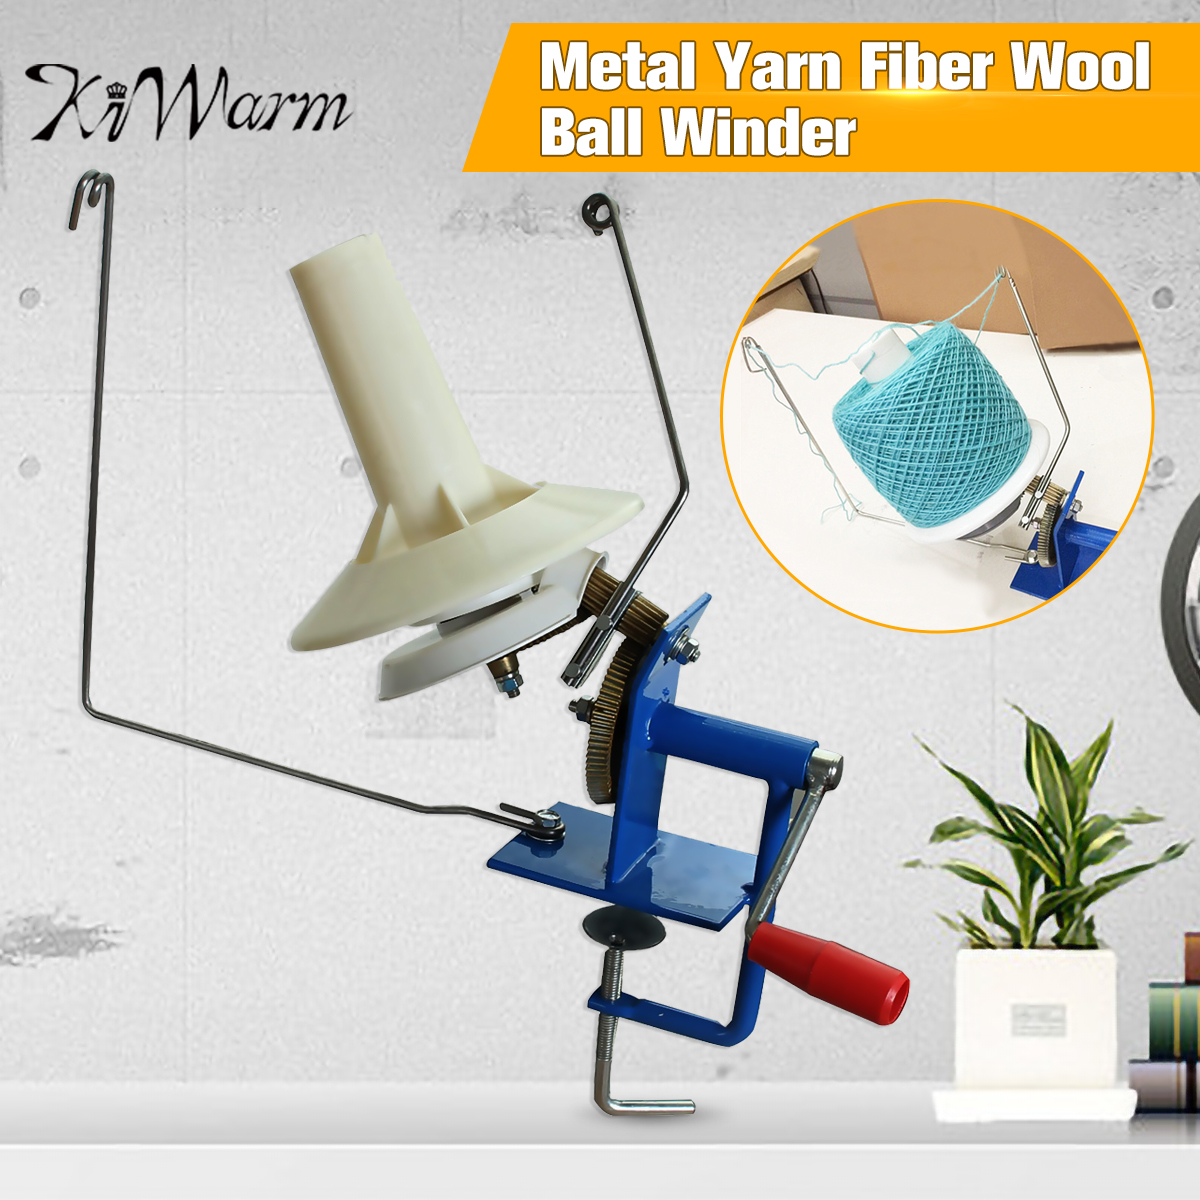 Large Metal Yarn Fiber String Ball Wool Hand Operated Cable Winder Machine Household Winder Holder Winder Fiber 10oz Heavy DutyLarge Metal Yarn Fiber String Ball Wool Hand Operated Cable Winder Machine Household Winder Holder Winder Fiber 10oz Heavy Duty